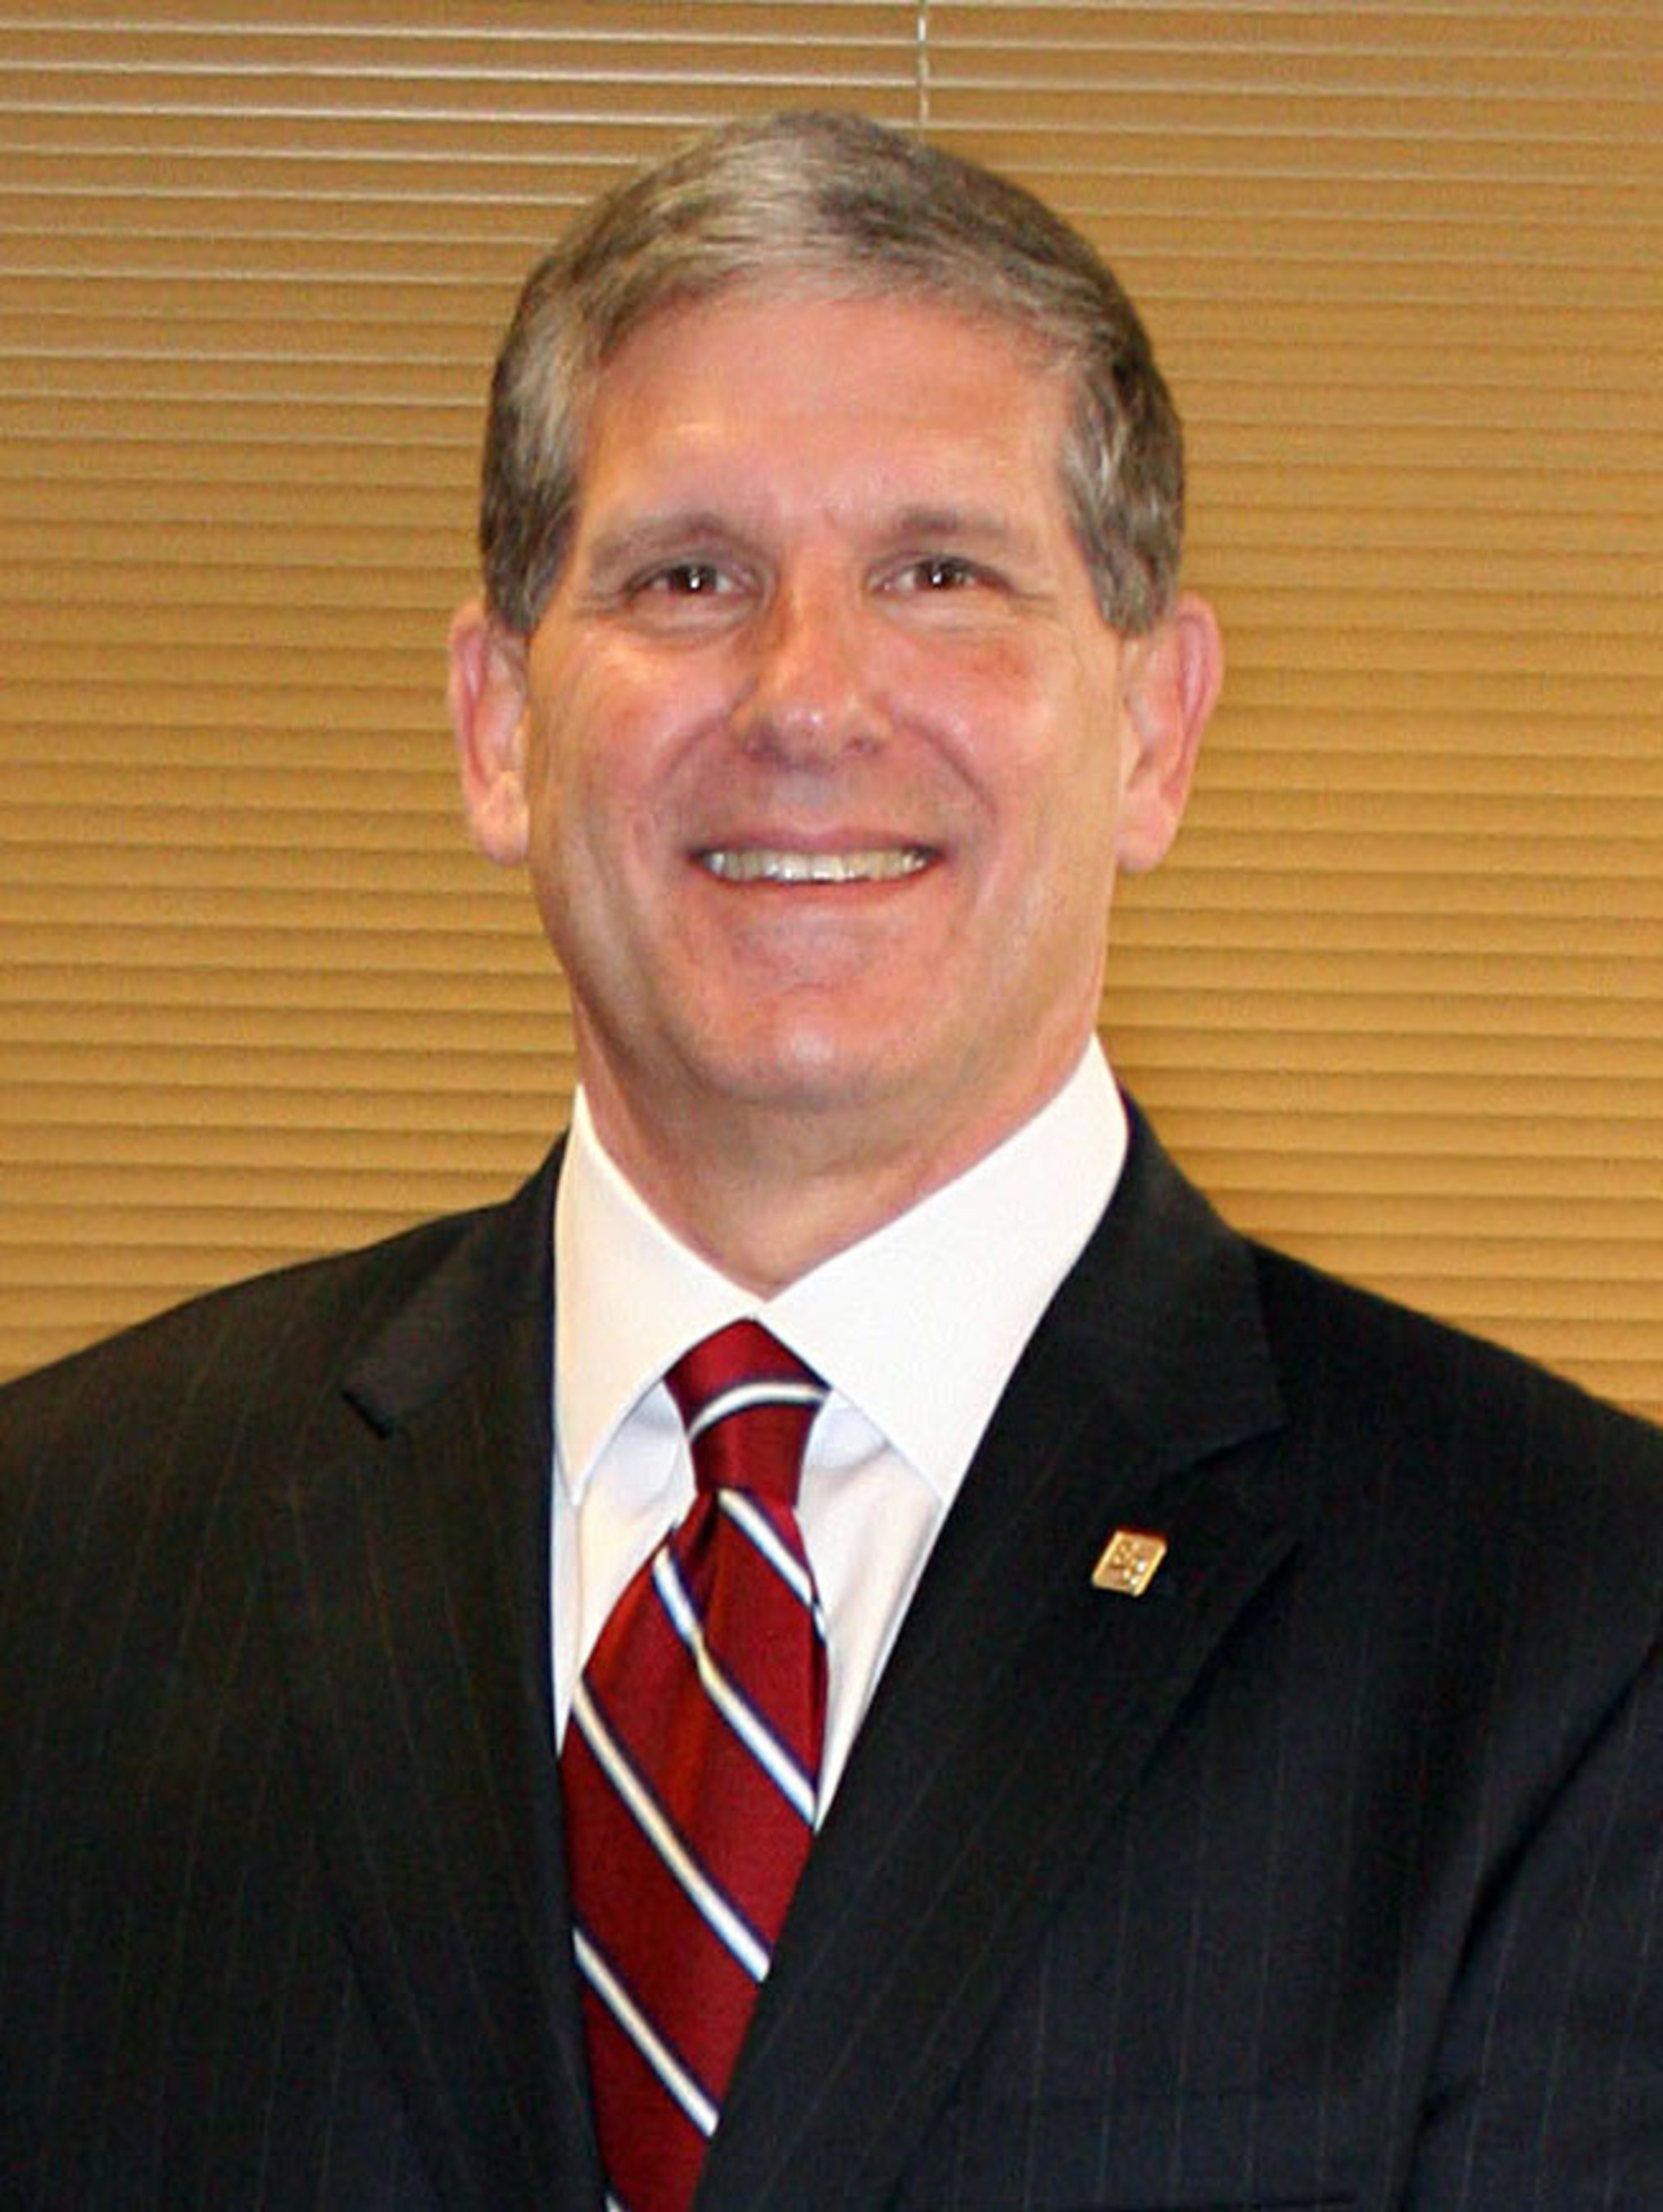 Gary Hartwick, President and CEO